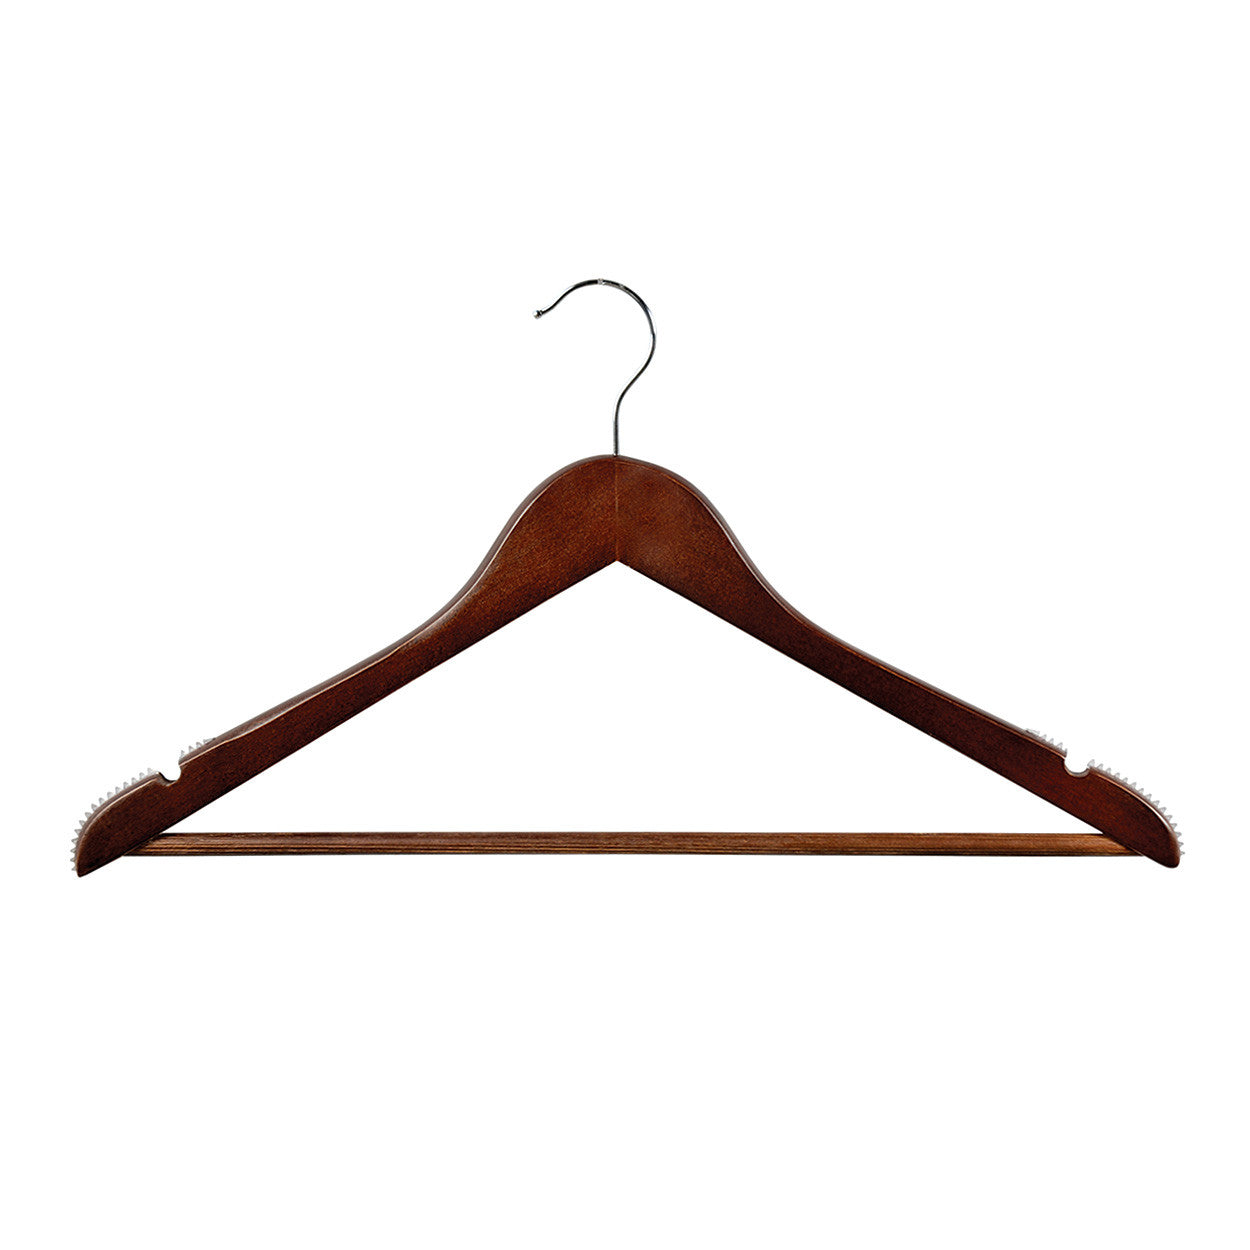 Wenge Wooden hanger with notches, ribs & rail  440 W x 14 mm Thick (Bundle of 50) H2650WE-50